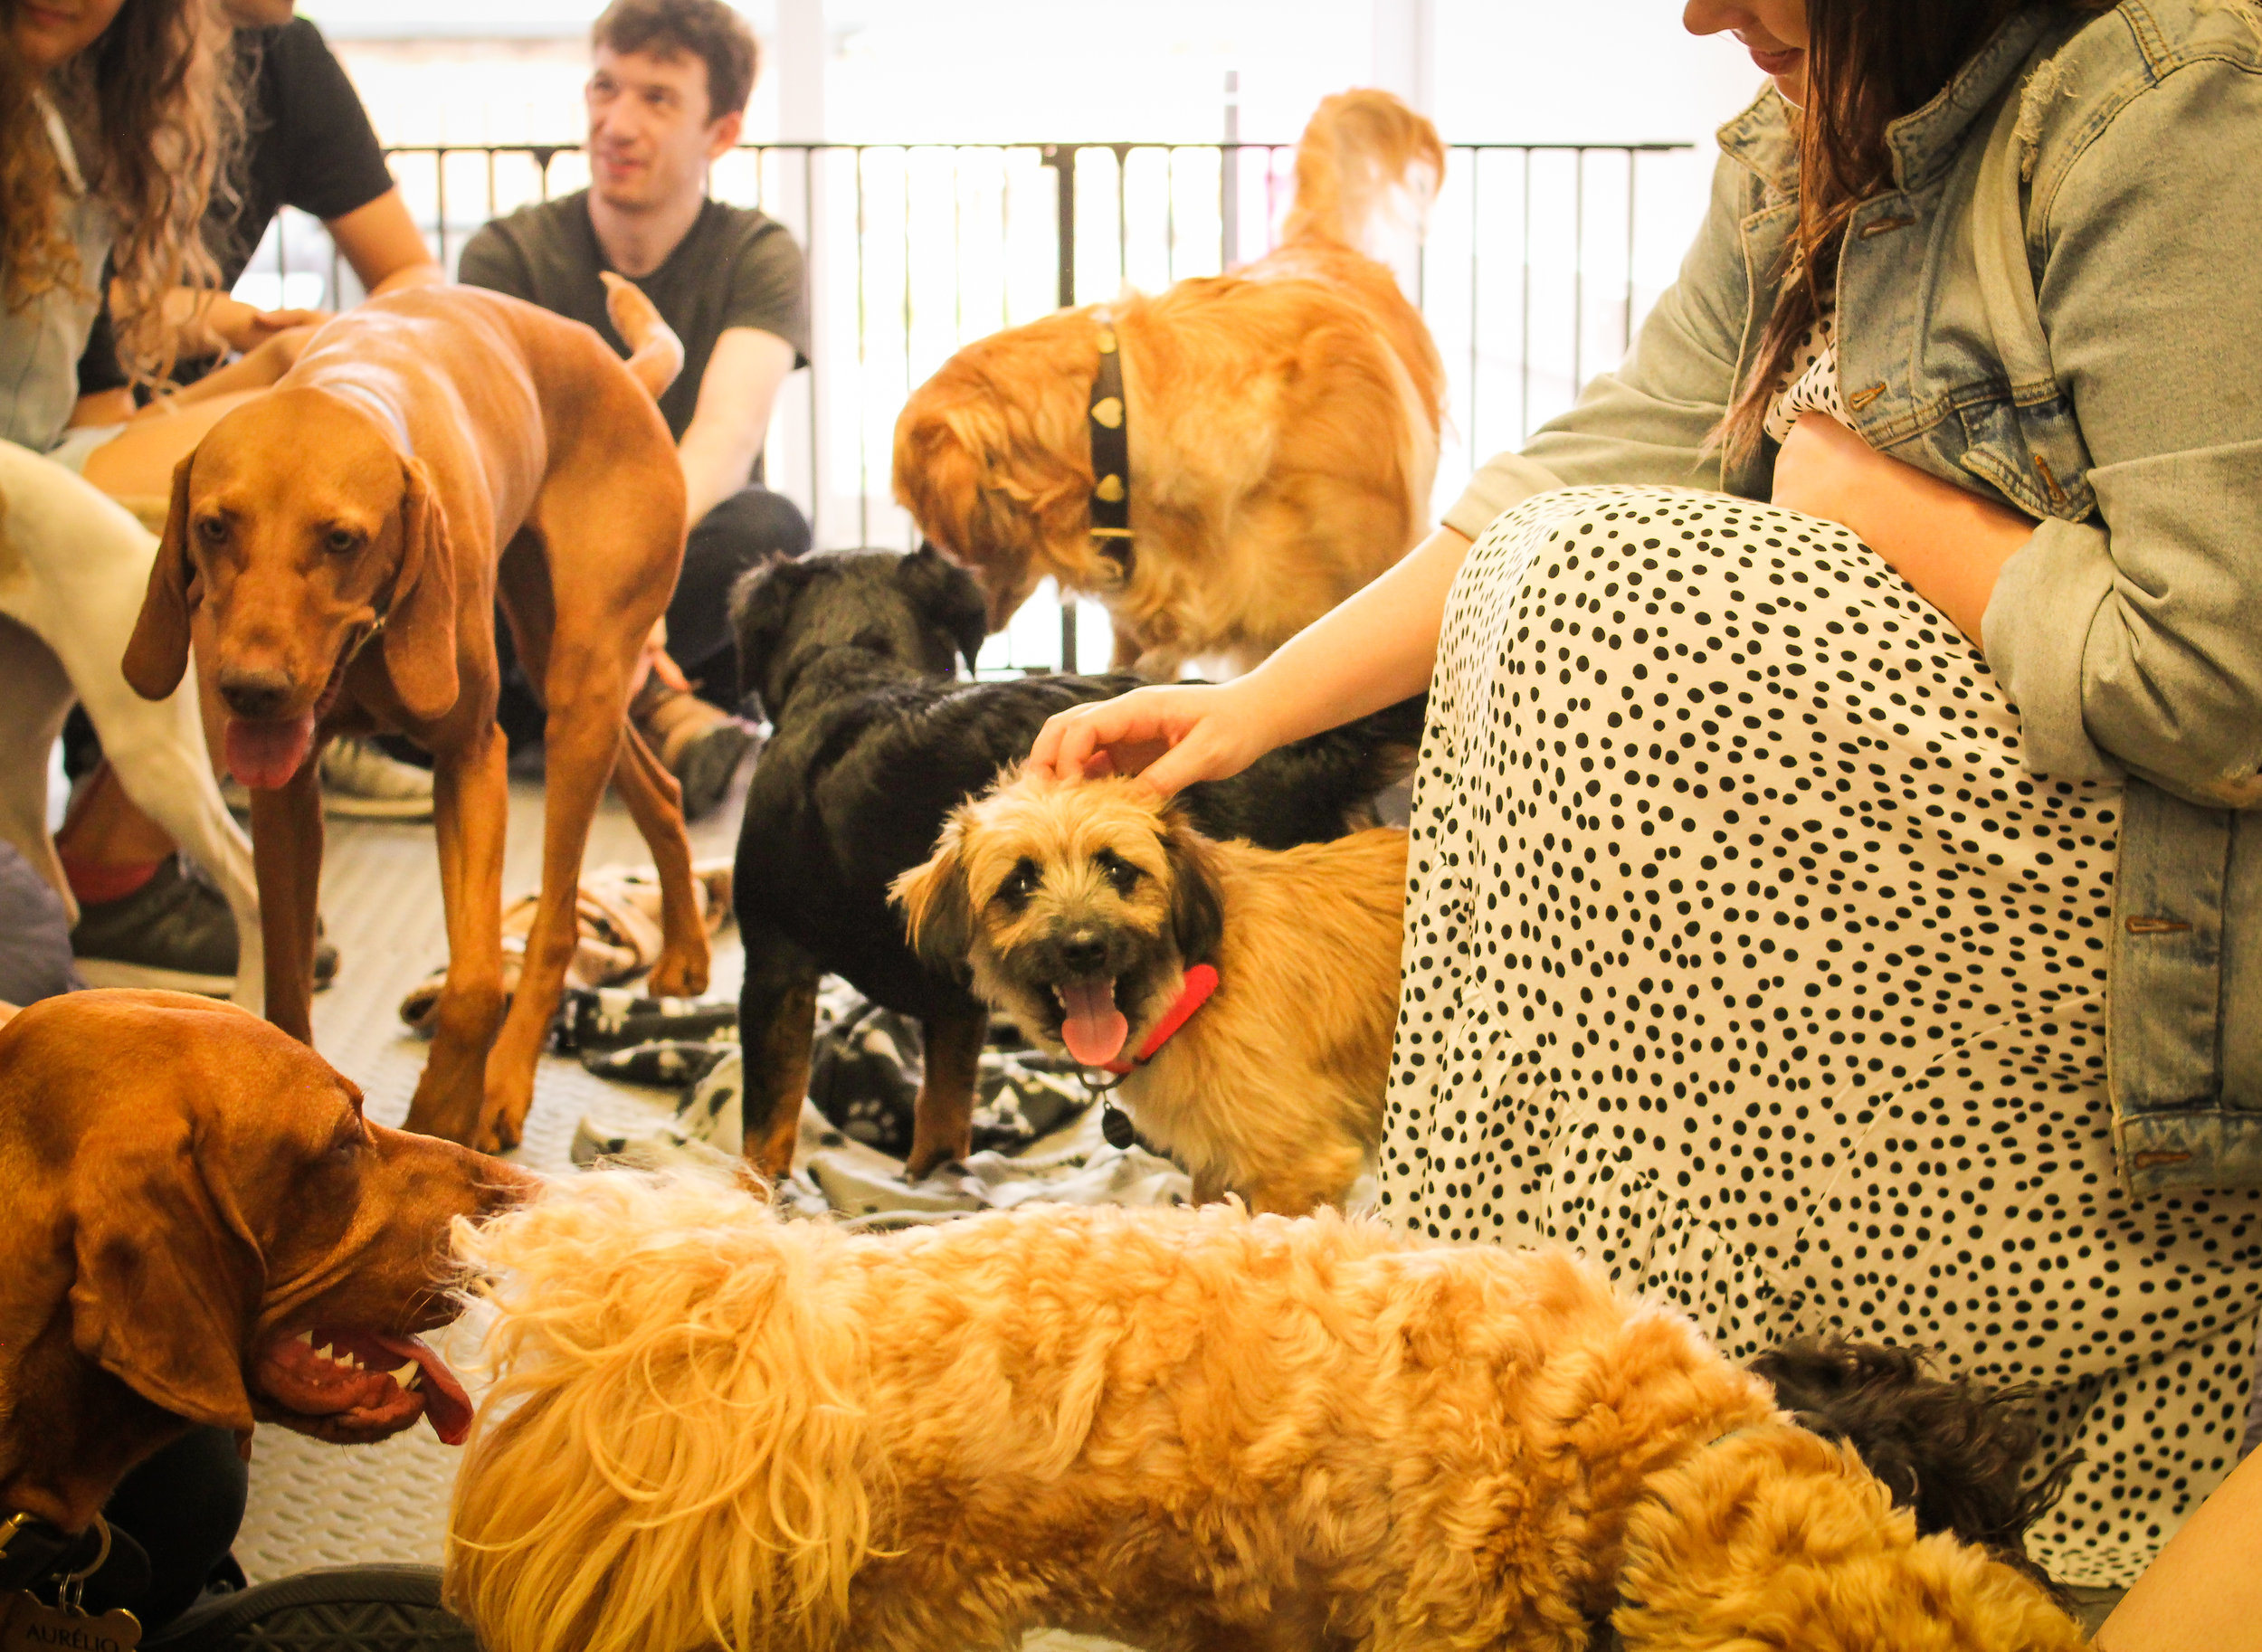 """""""I found the dog therapy very uplifting and soothing after a tough week. All the dogs were very friendly and energetic"""" - Helen, Boomf"""